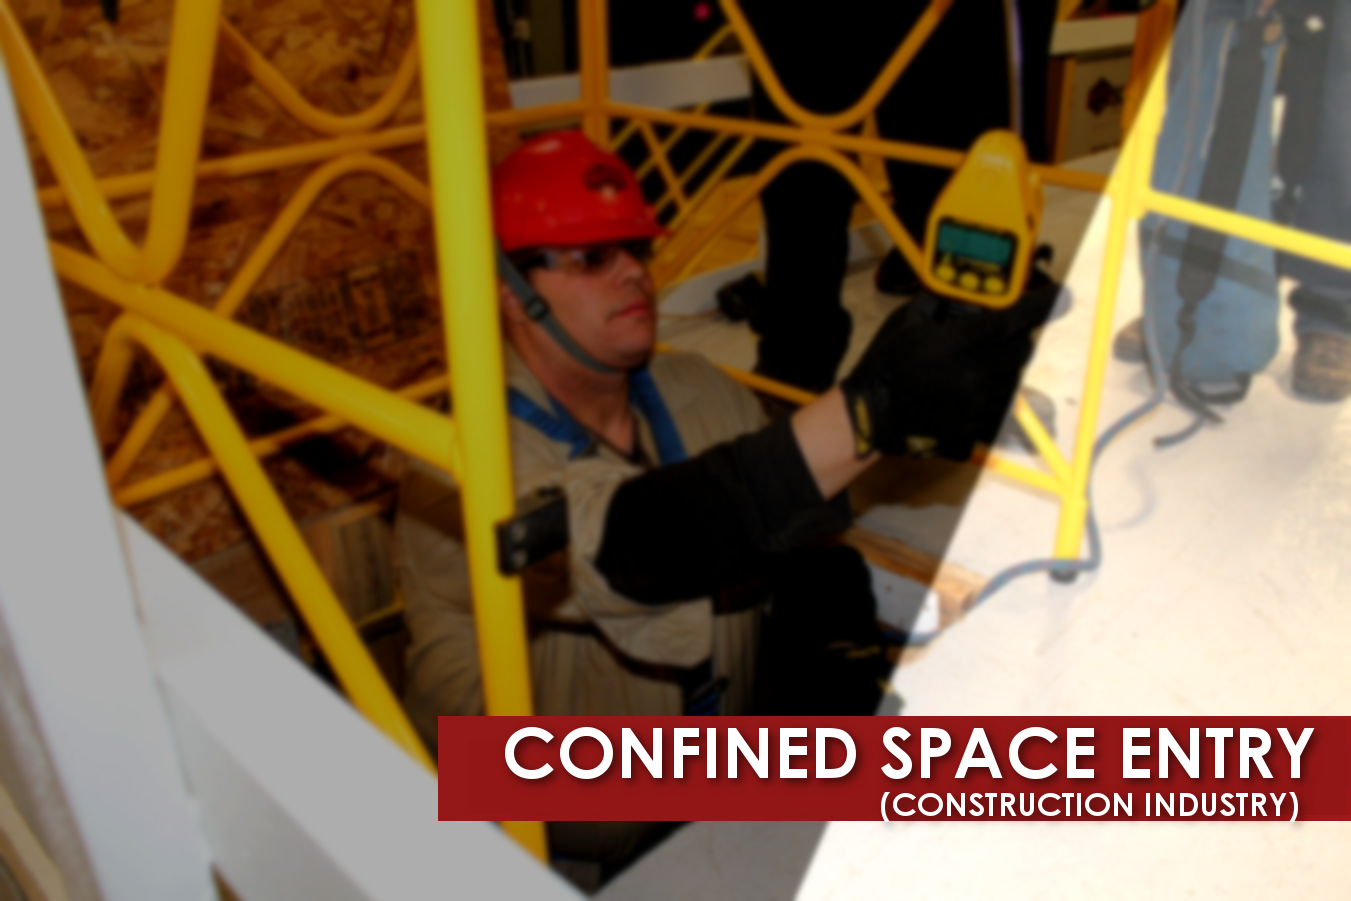 Confined Space Entry Construction